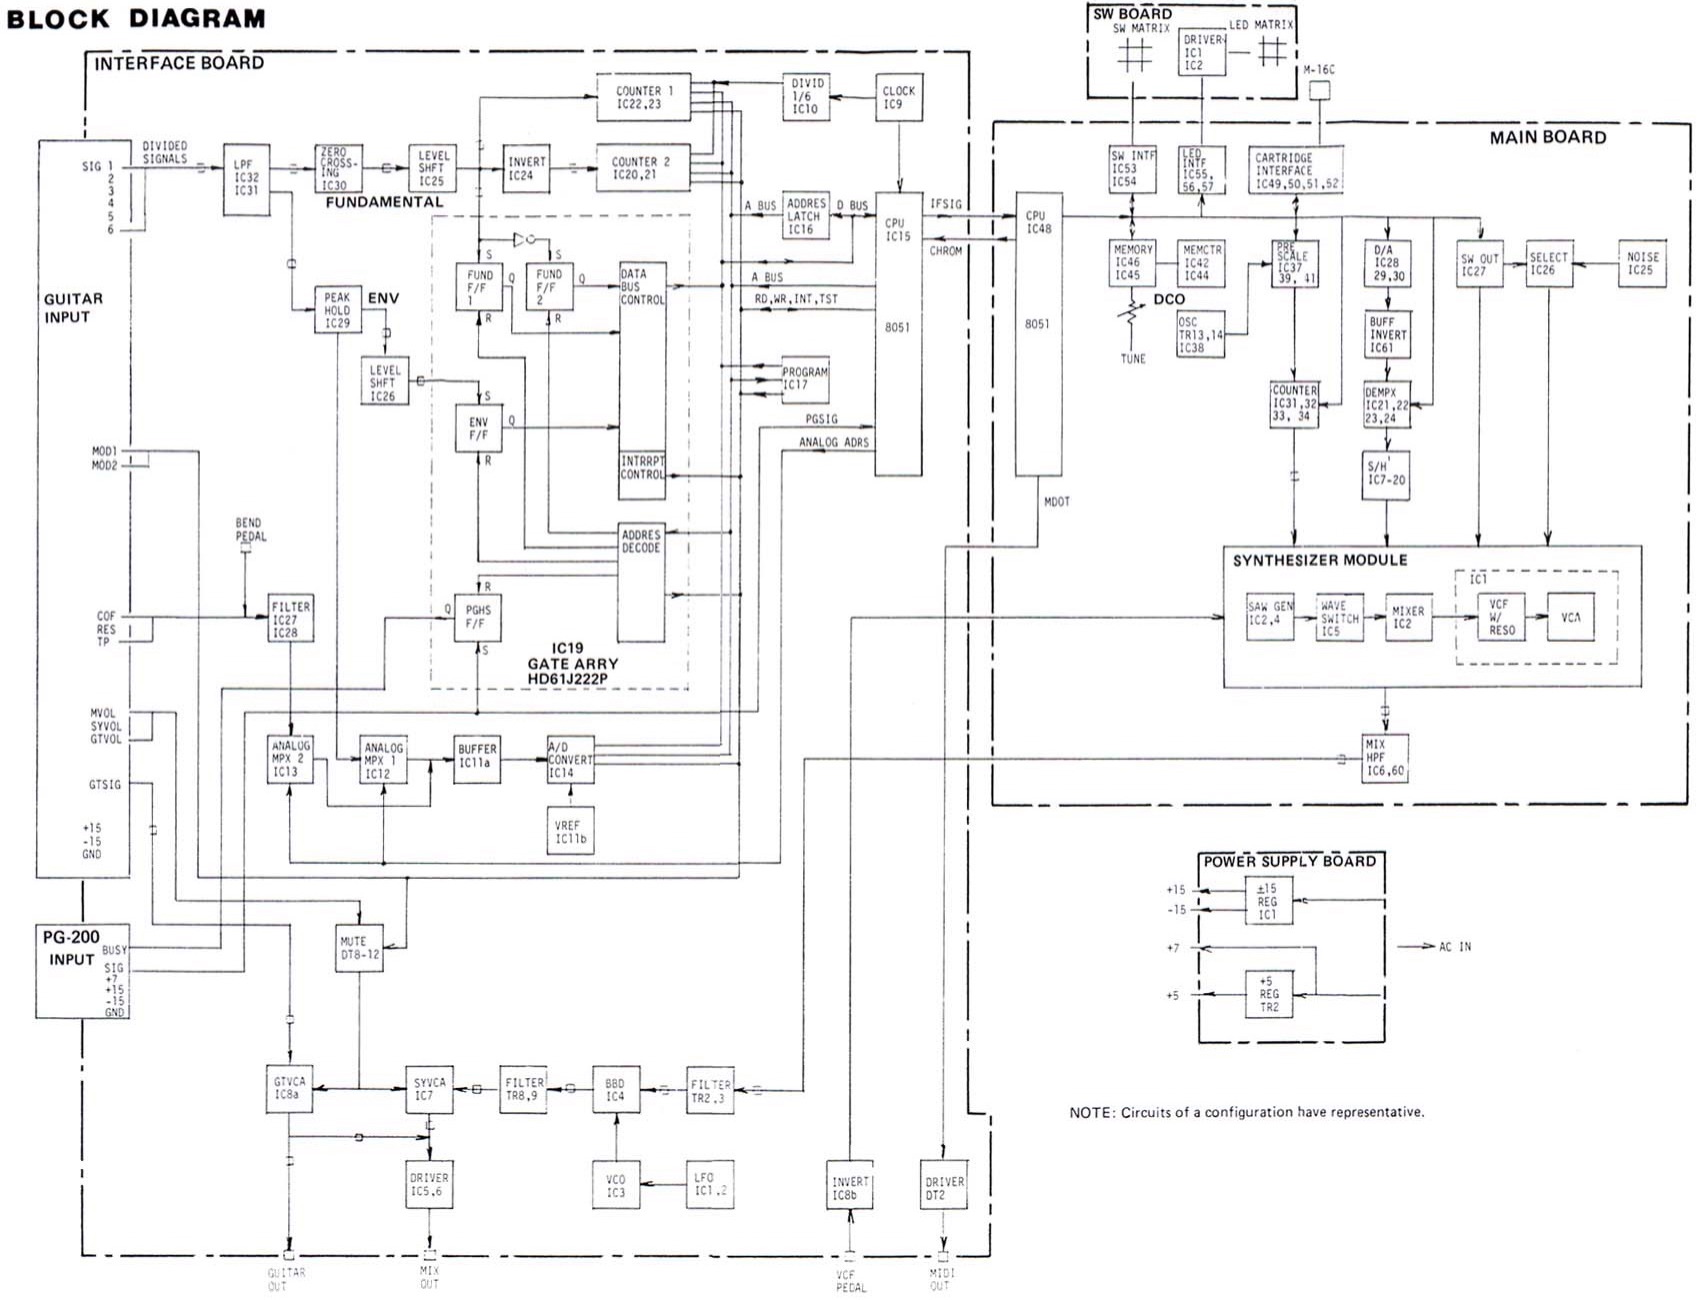 Sola Power Supply Unit Diagram For Printed Circuits Schematic Diagrams Mini Squire Jack Wiring